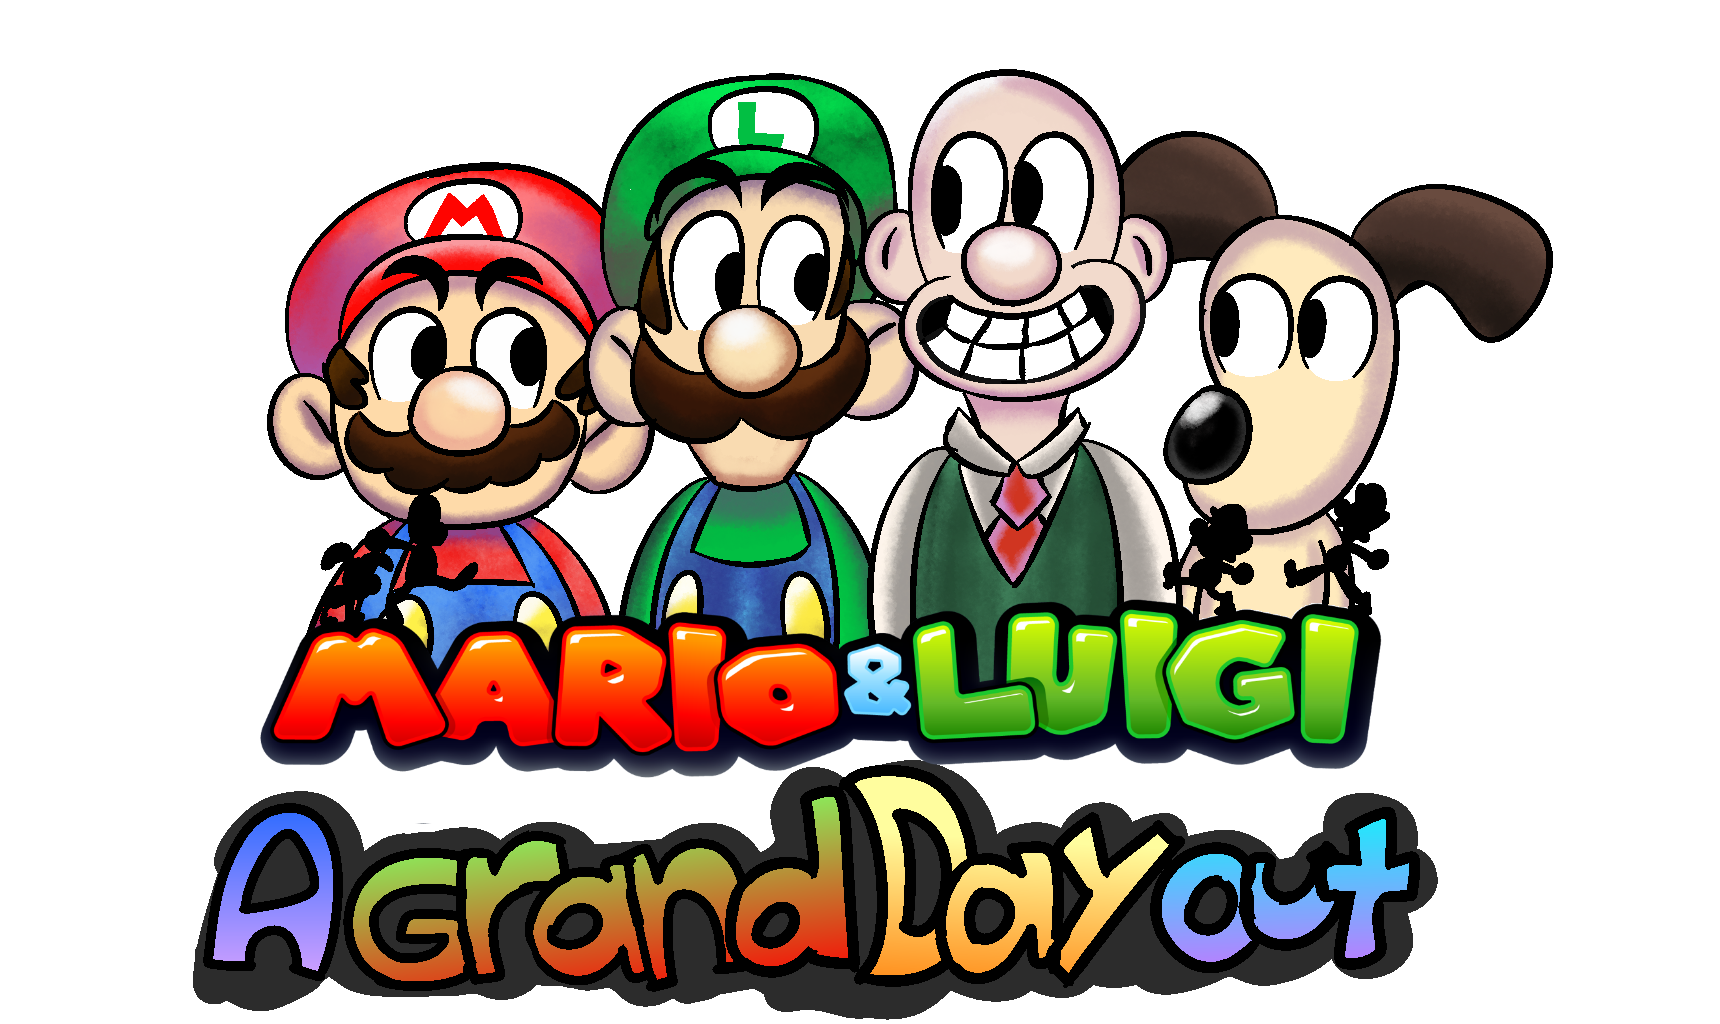 Mario & Luigi goes on 'A Grand Day Out' with Wallace & Gromit.